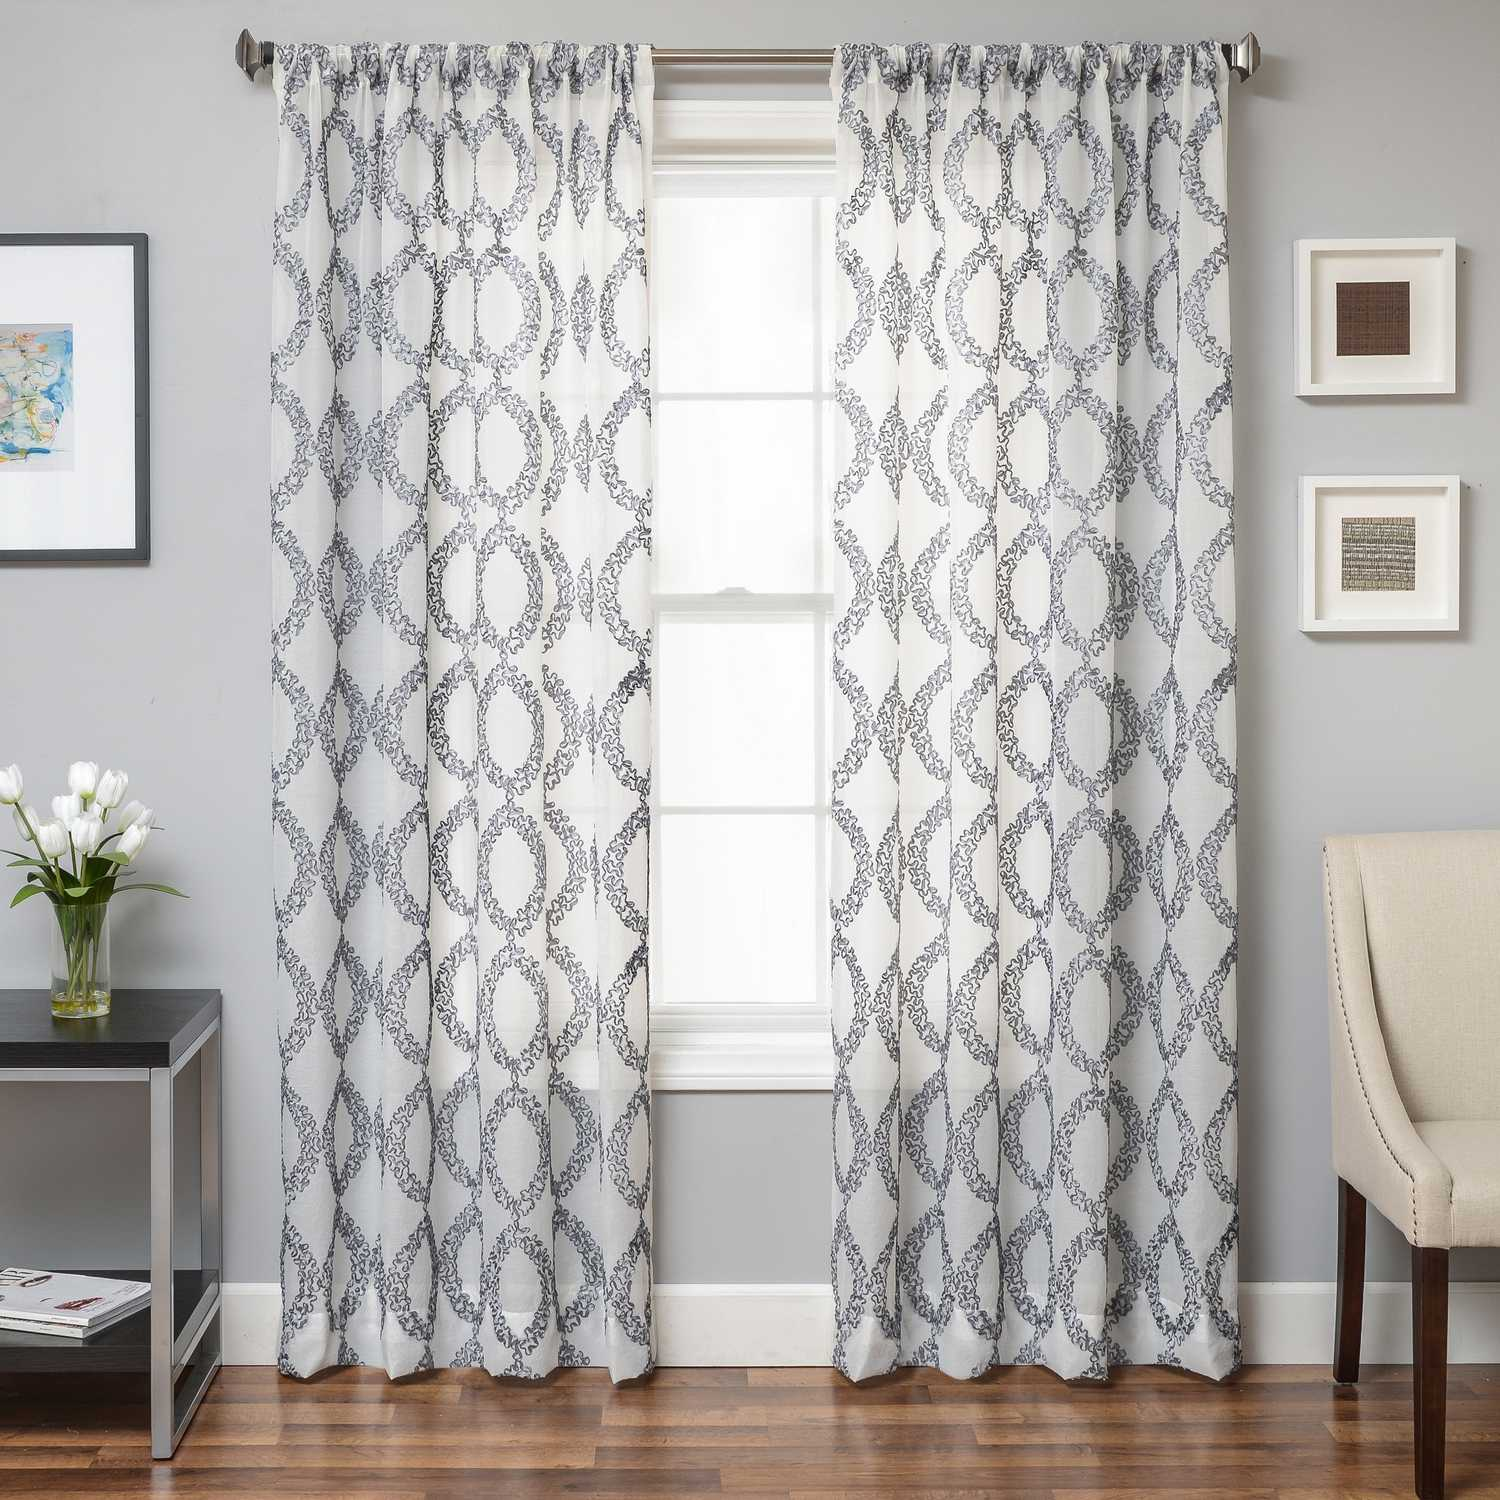 Softline Home Fashions Cagliari Drapery Panels Color White Swatch Available